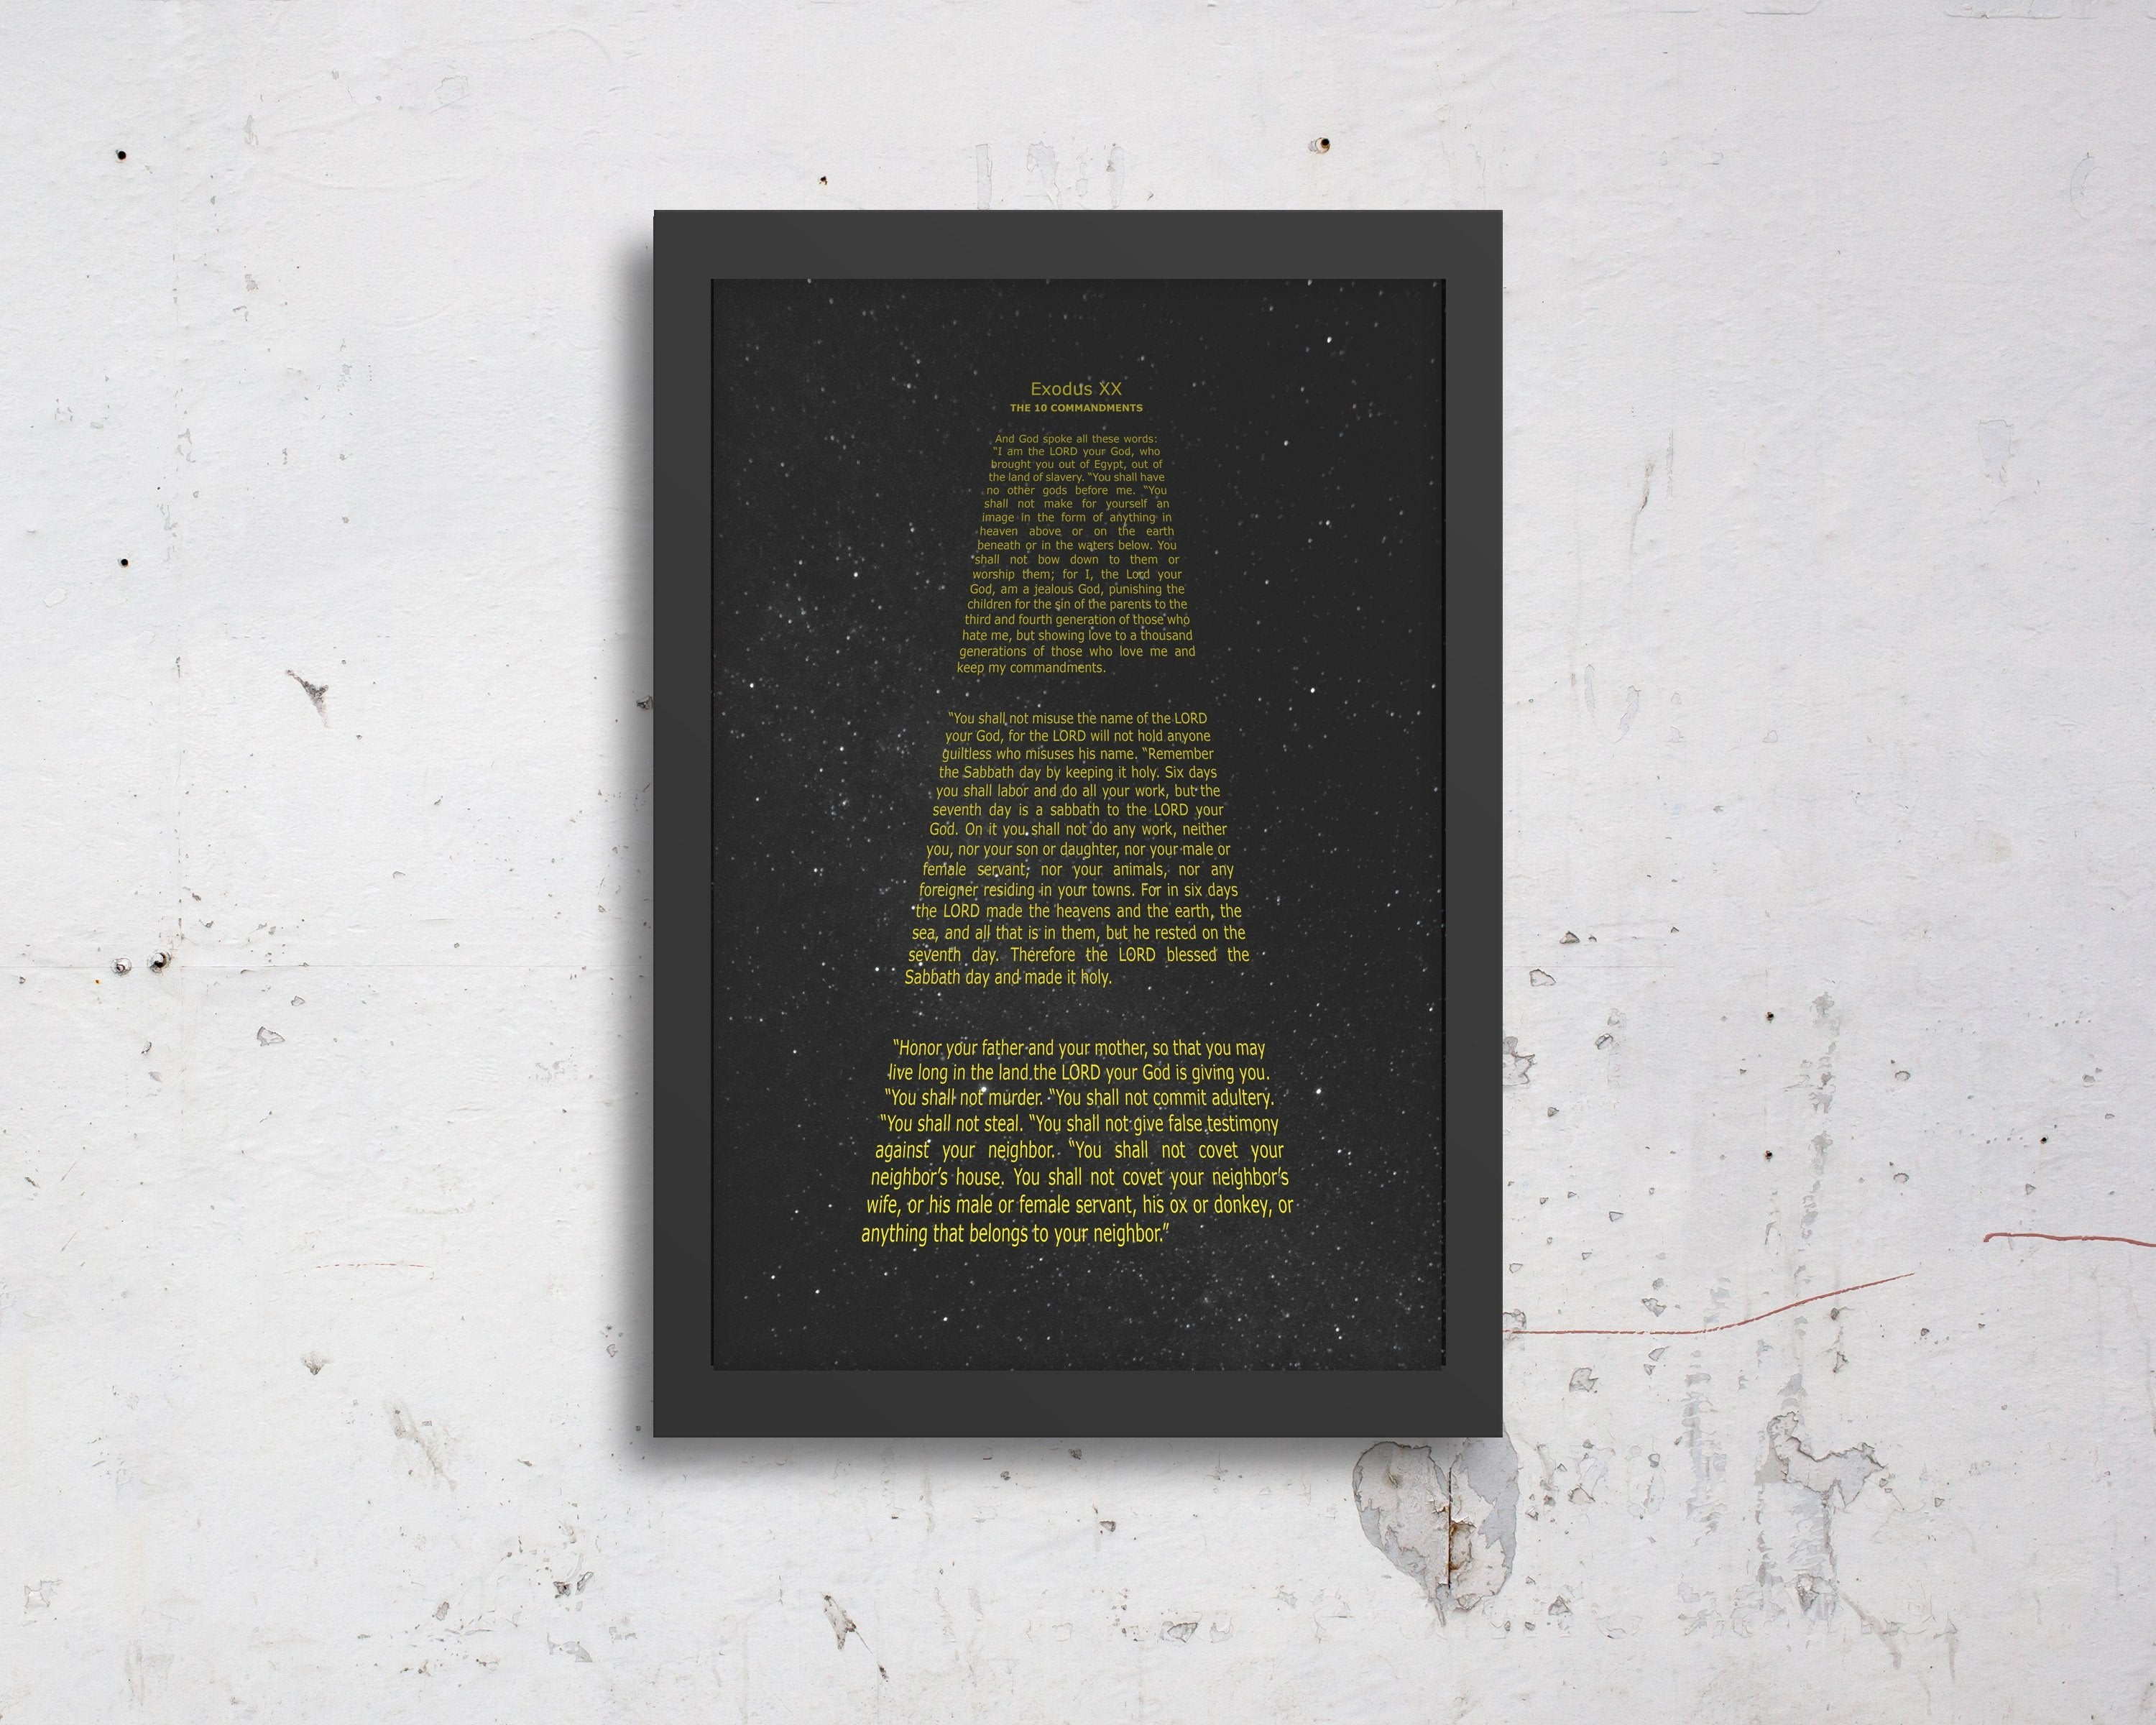 The 10 Commandments, Crawl, Sci-fi, Geek, customize, wall, art, gift, Bible verse, prints, Scriptures, on canvas, Framed, gifts, Christmas